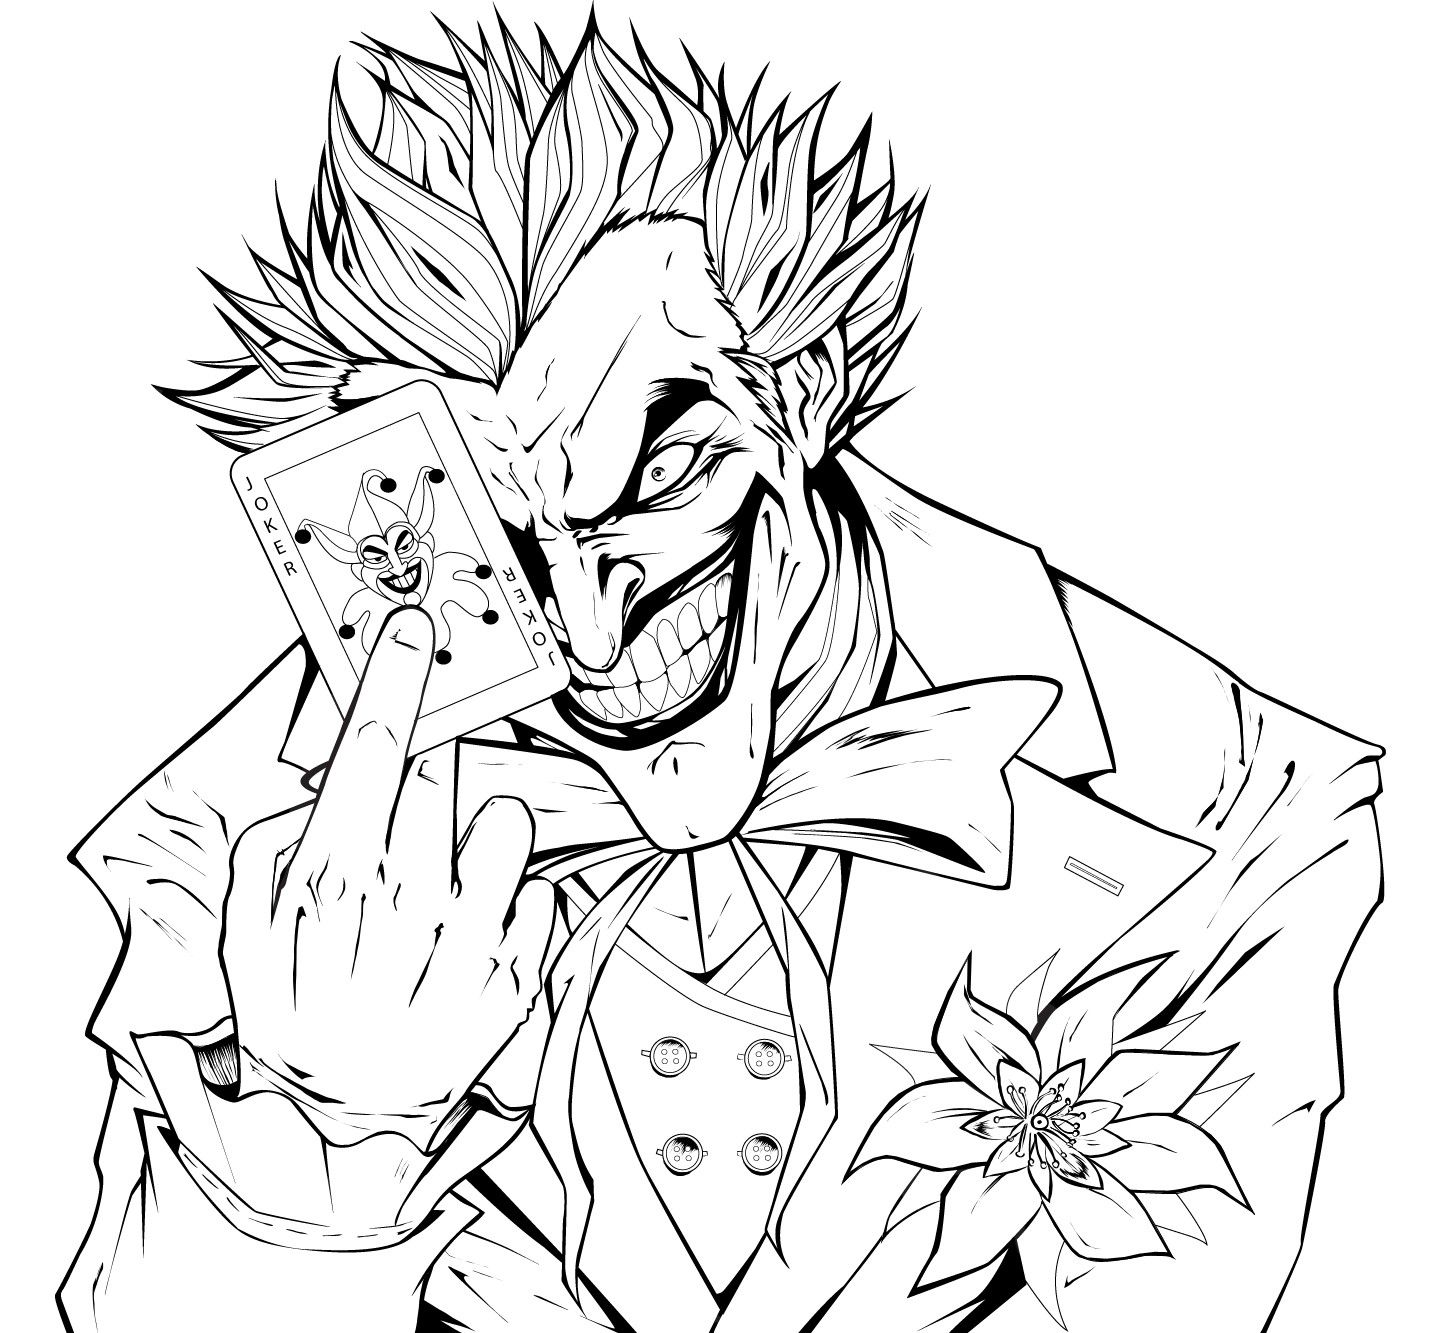 joker coloring pages printable my image sense - Batman Coloring Books